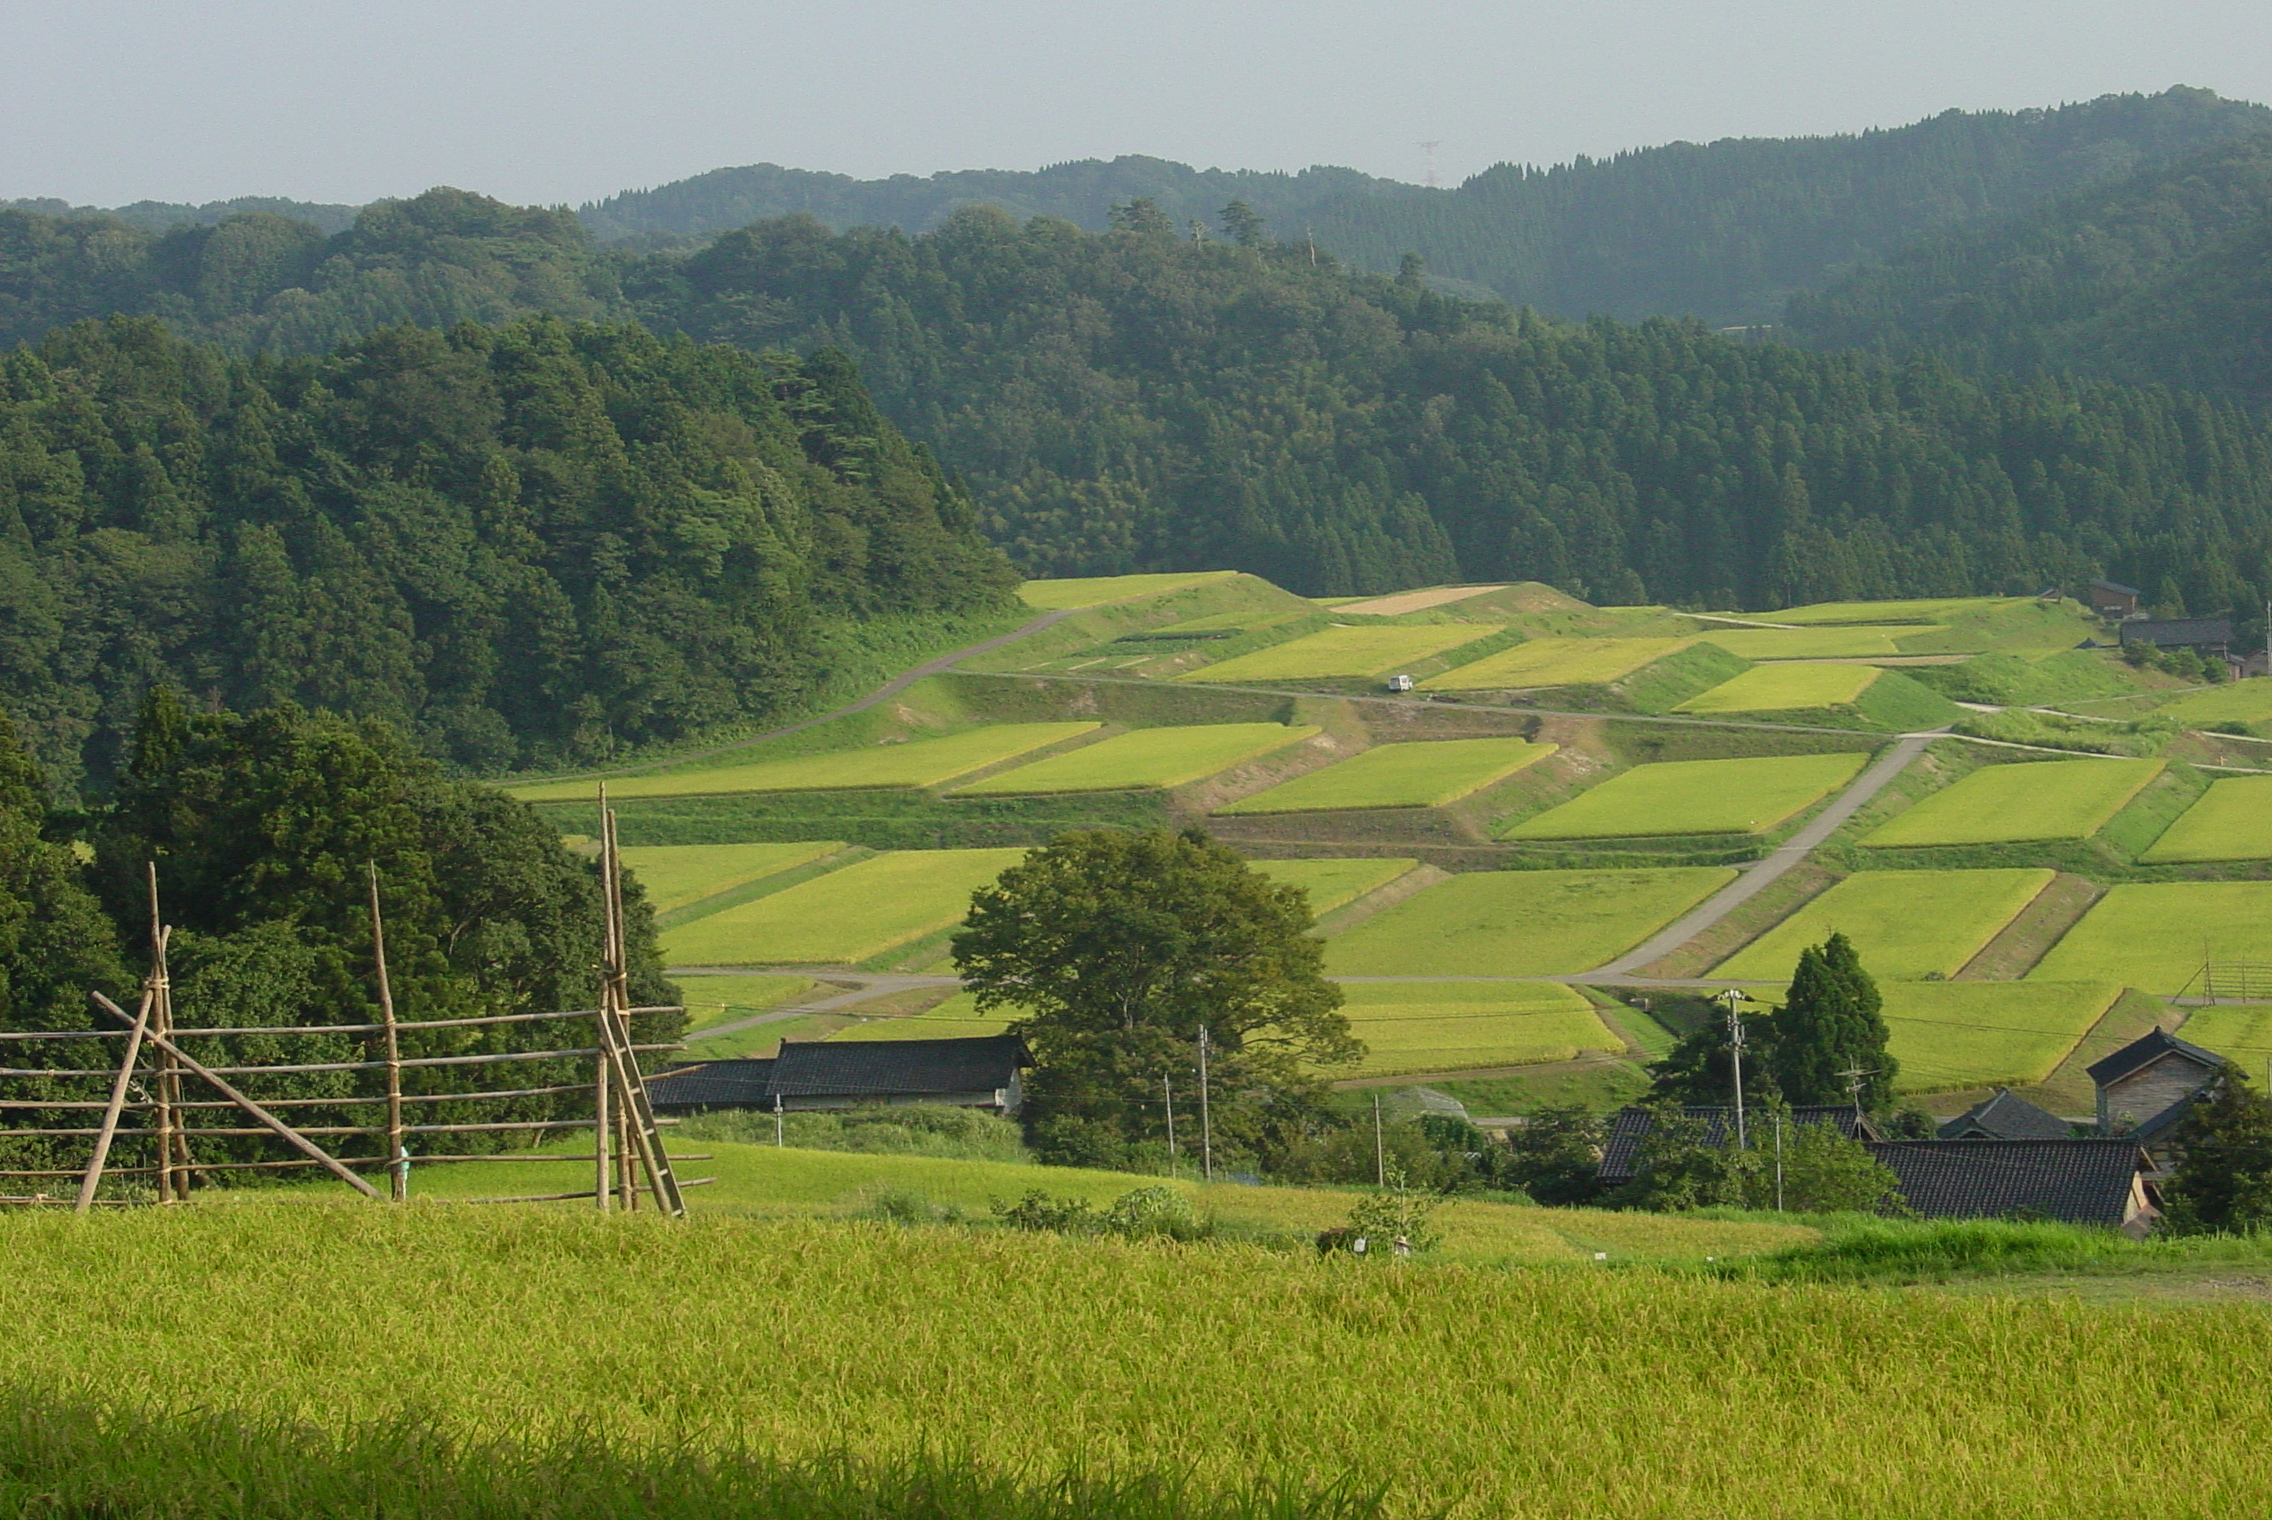 This is true autumn in Japan. Recommended spots for rural landscapes